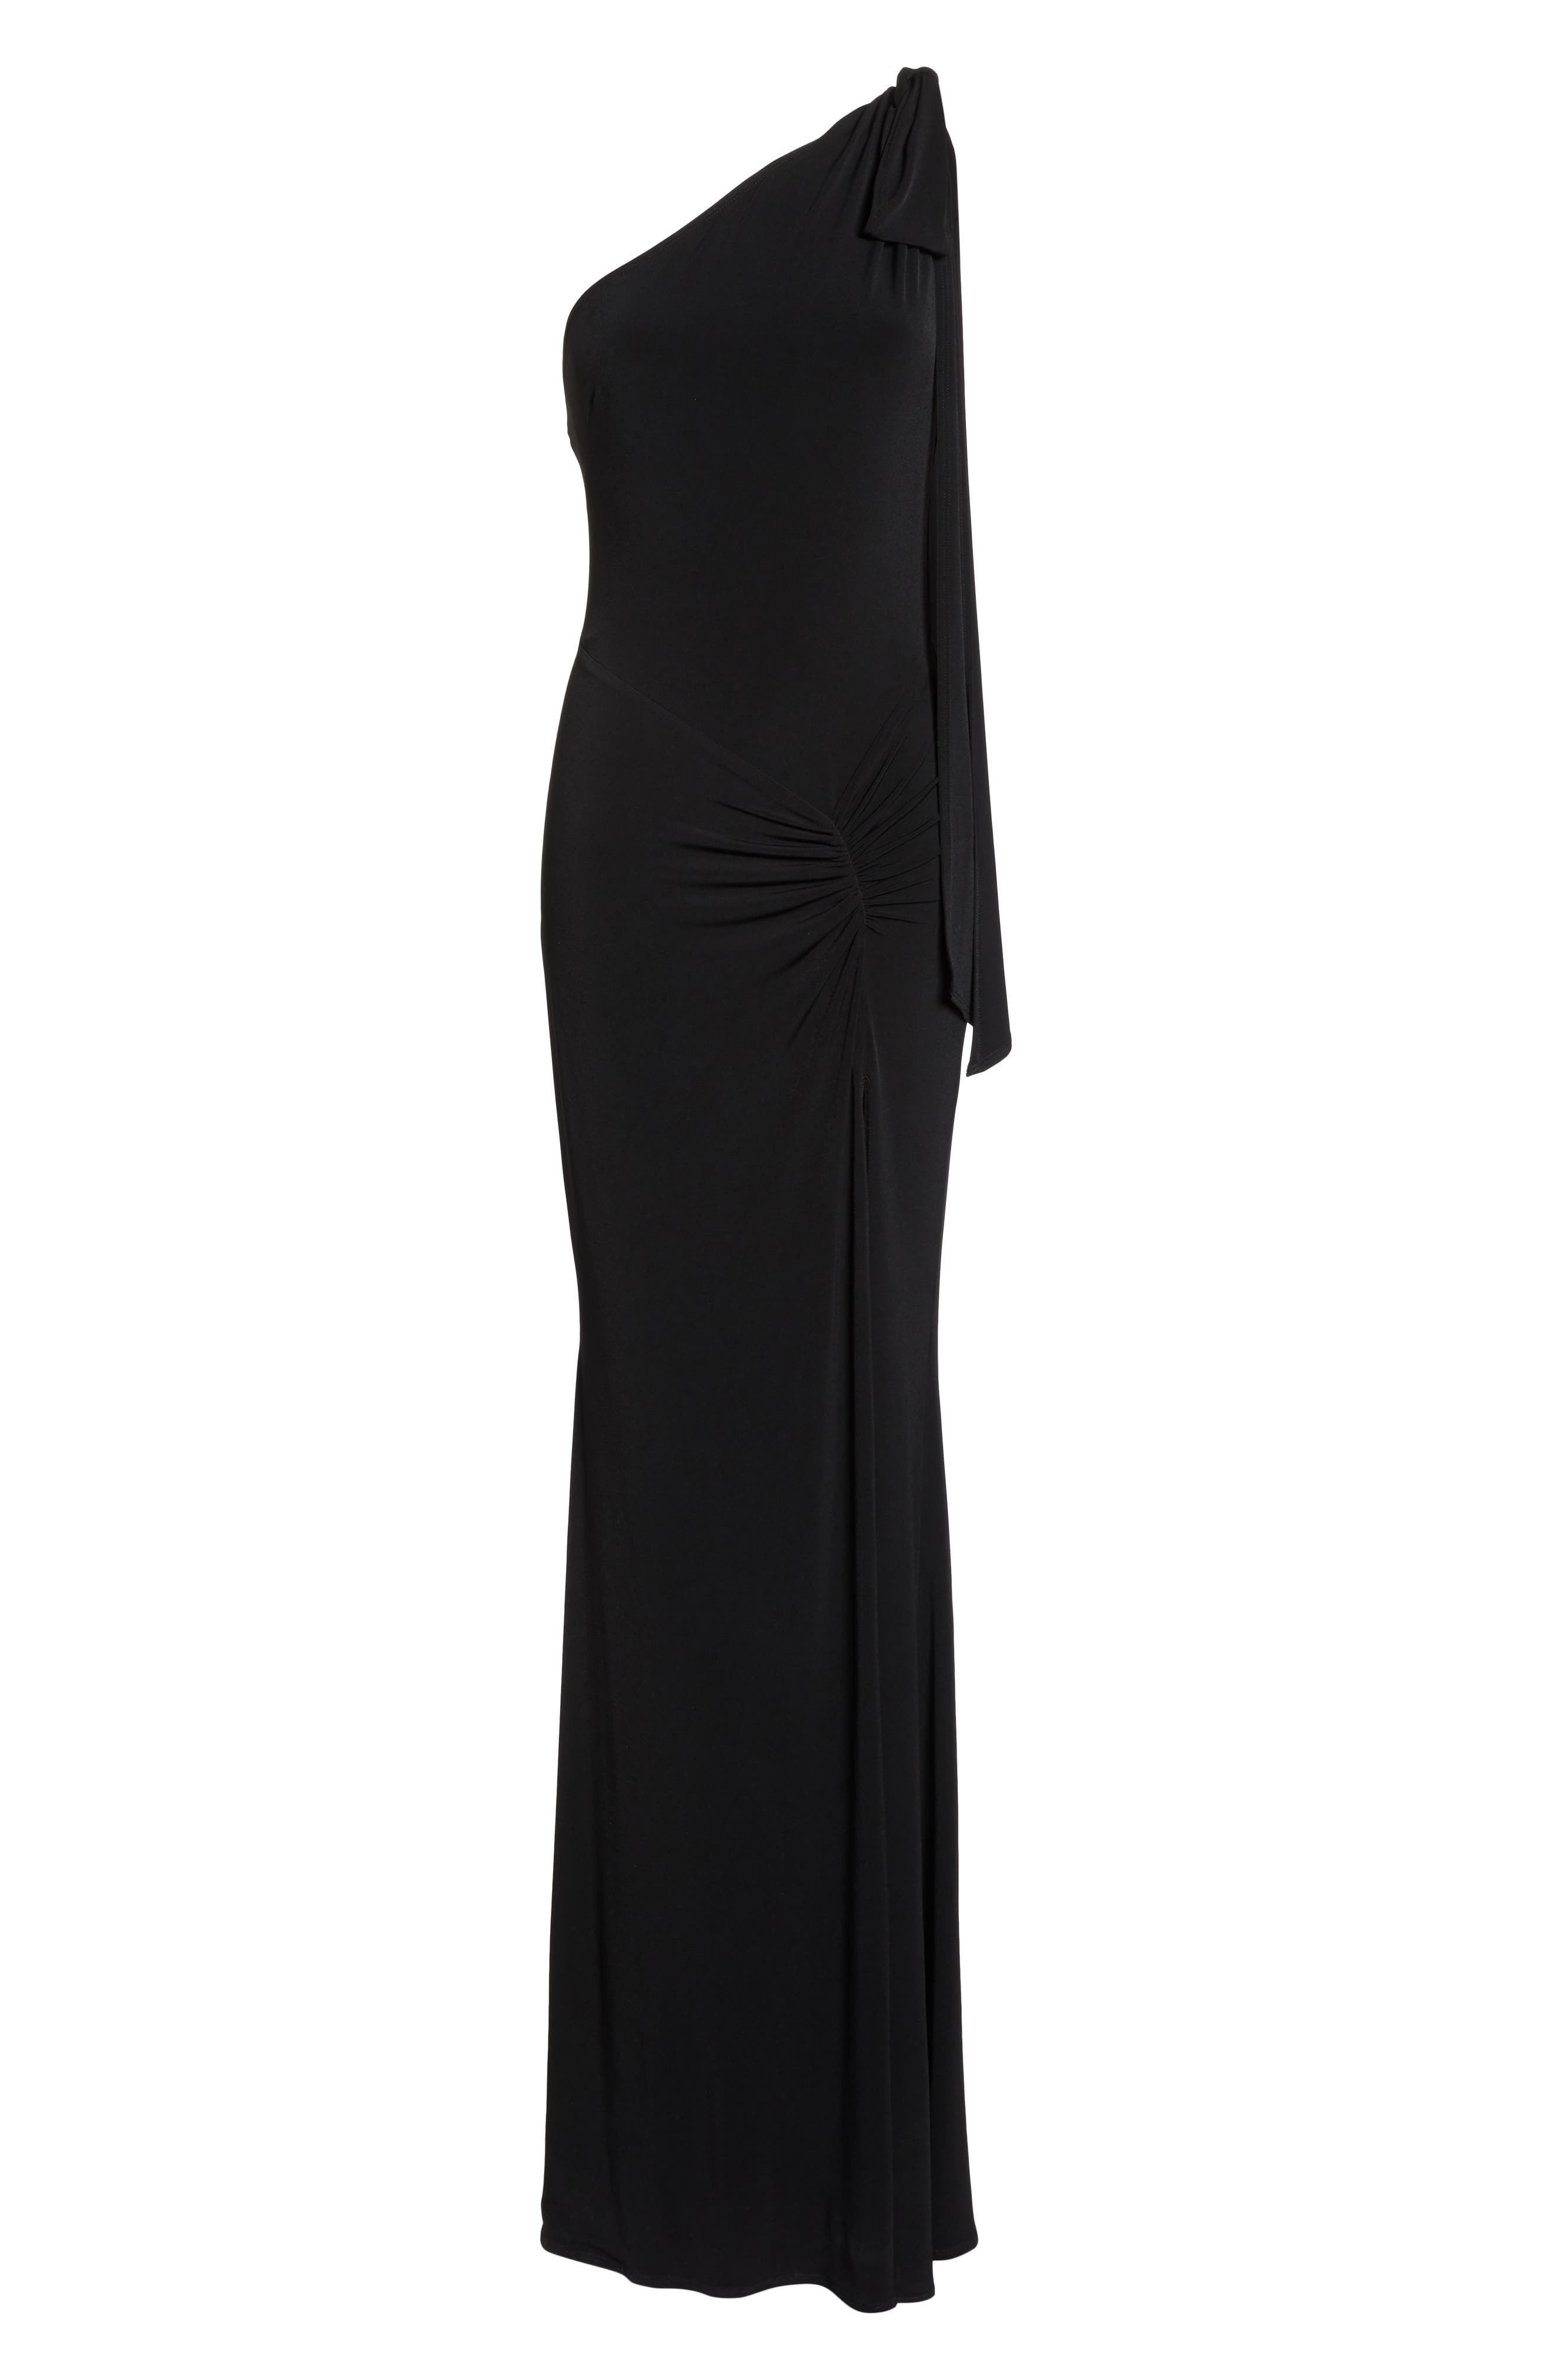 KATIE MAY,                             One-Shoulder Gown,                             Alternate thumbnail 7, color,                             BLACK